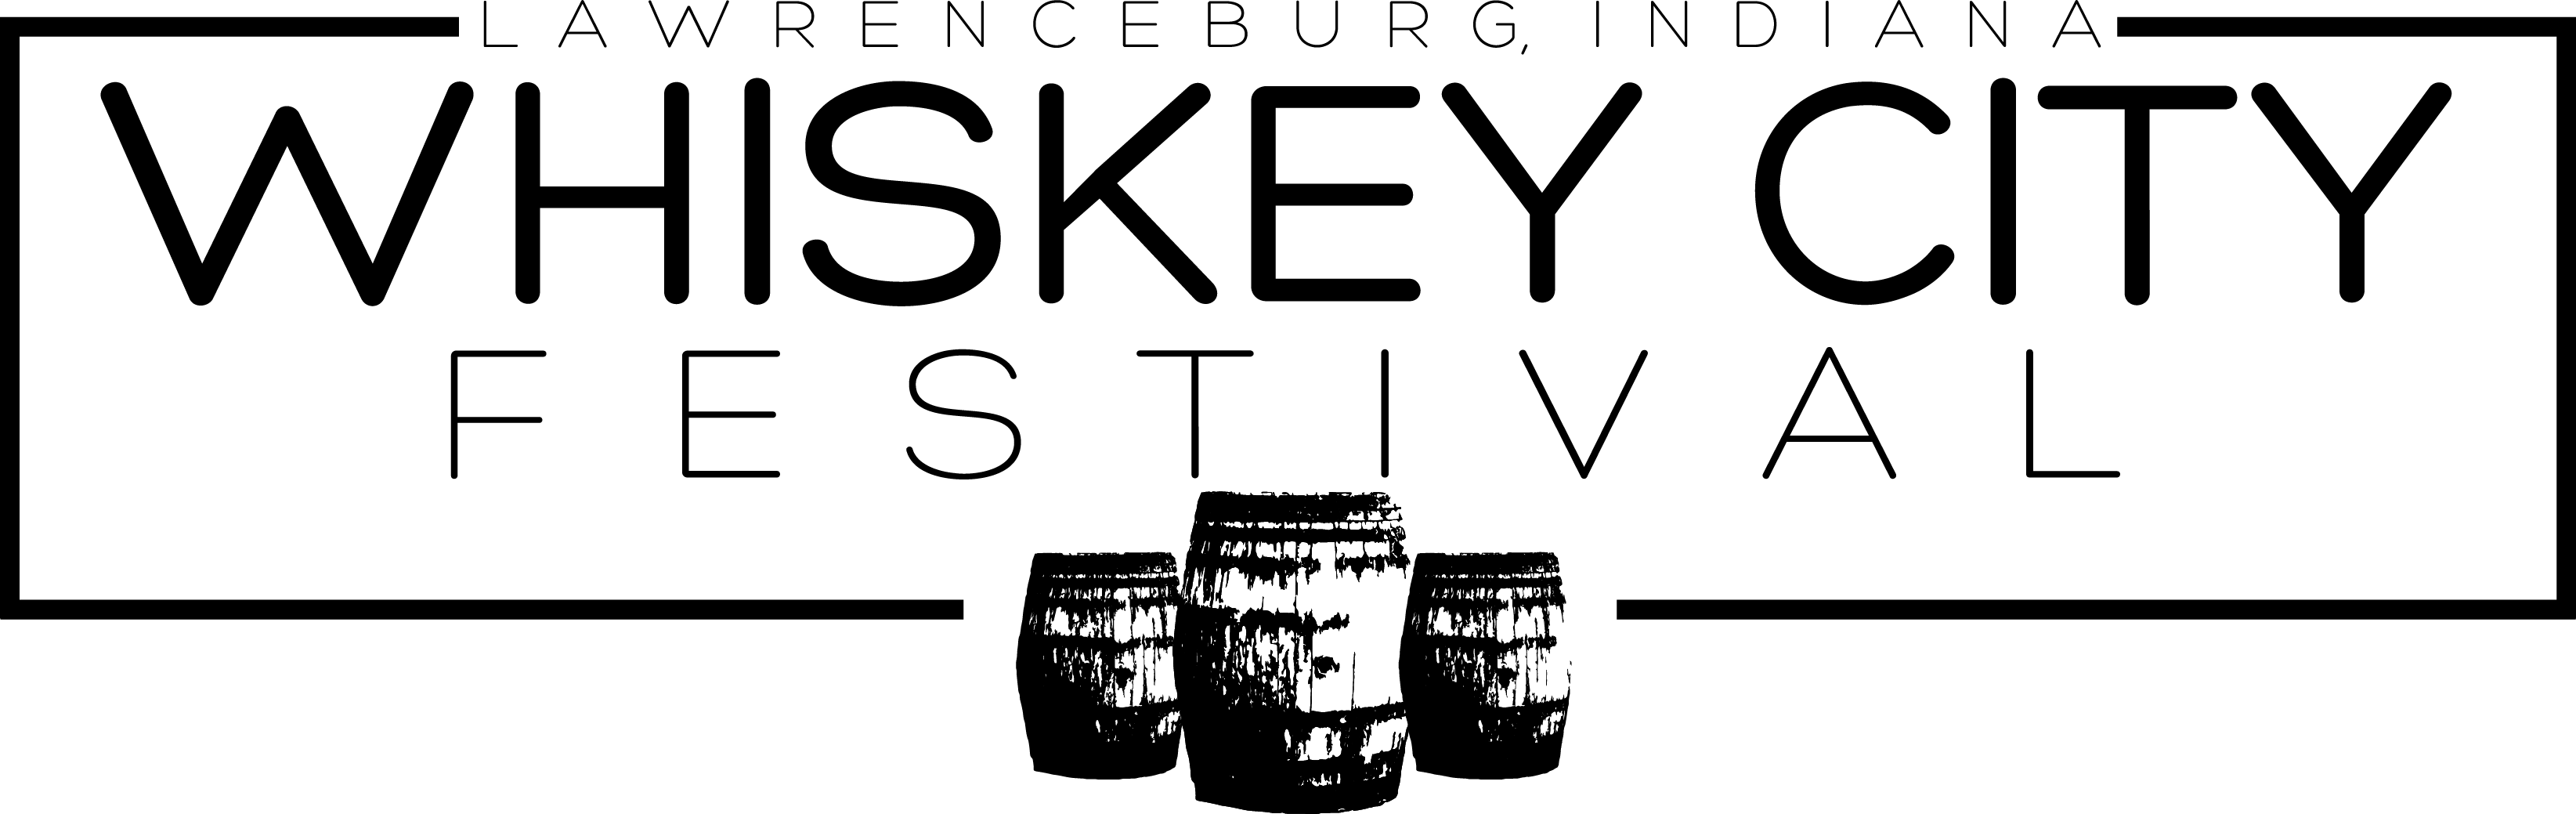 Whiskey city logo